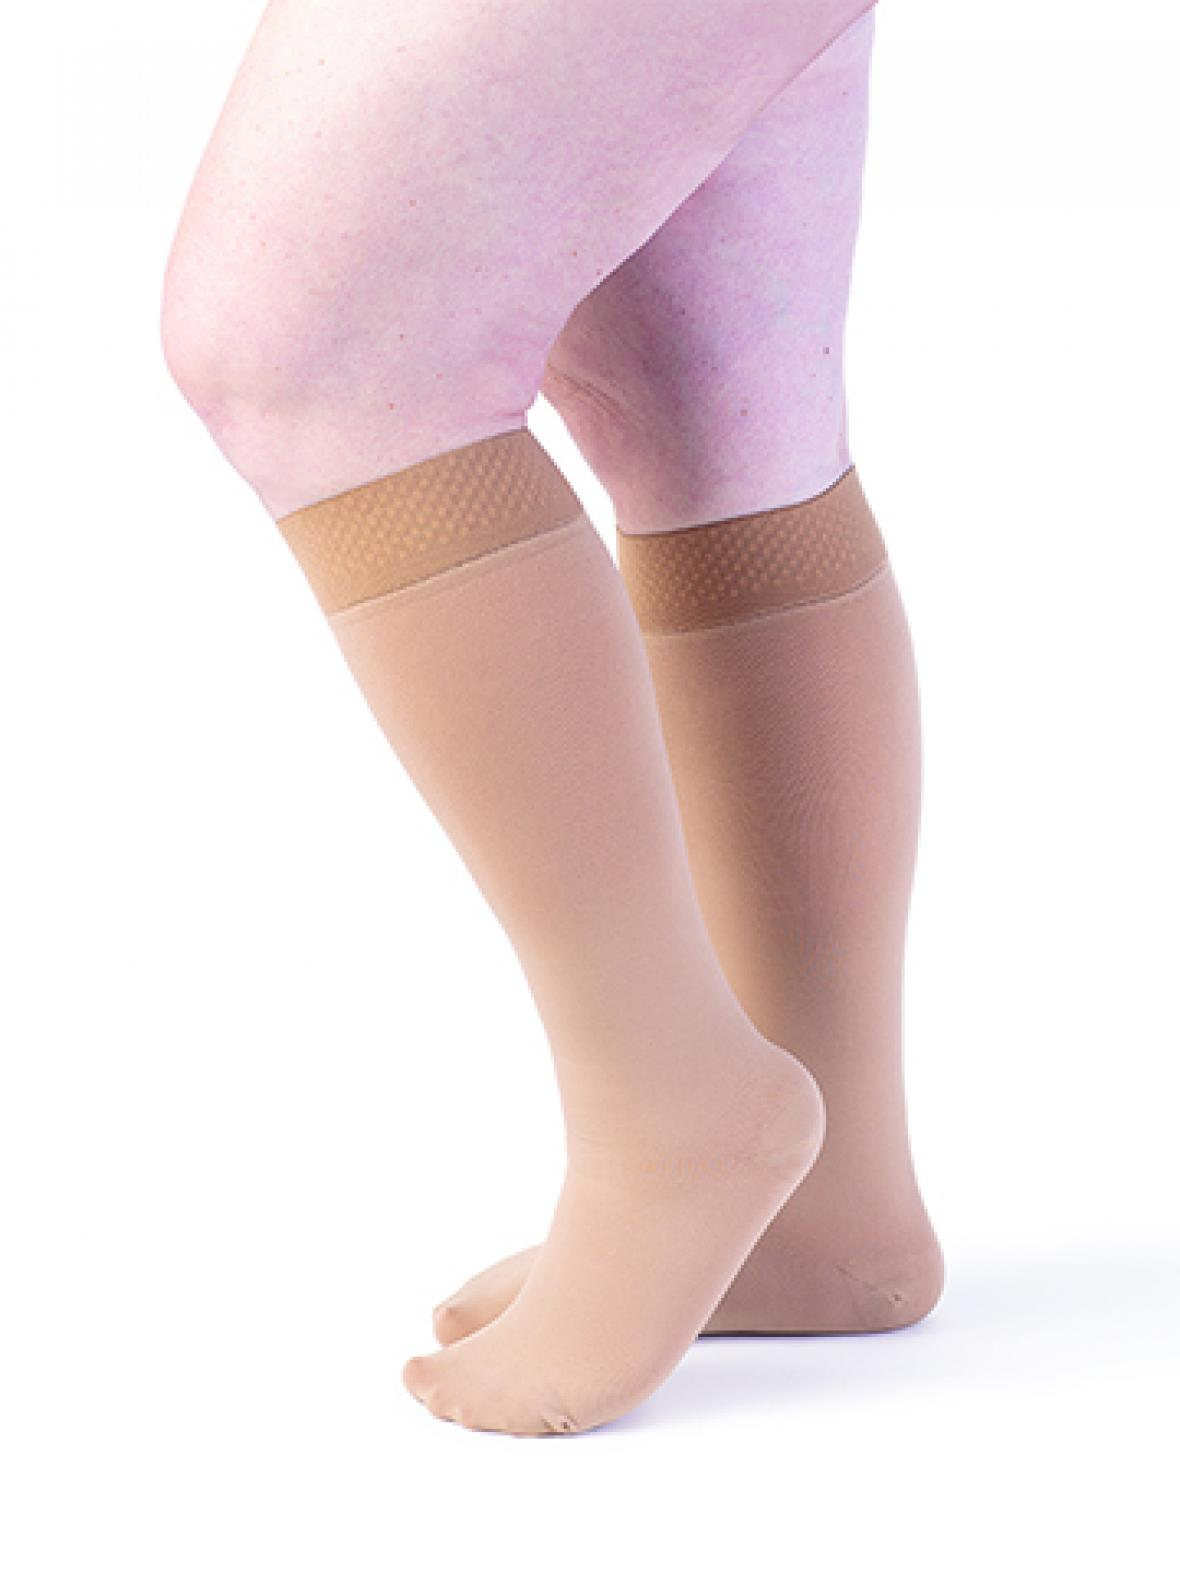 SIGVARIS Develops Innovative Hybrid Containment and Compression Garment